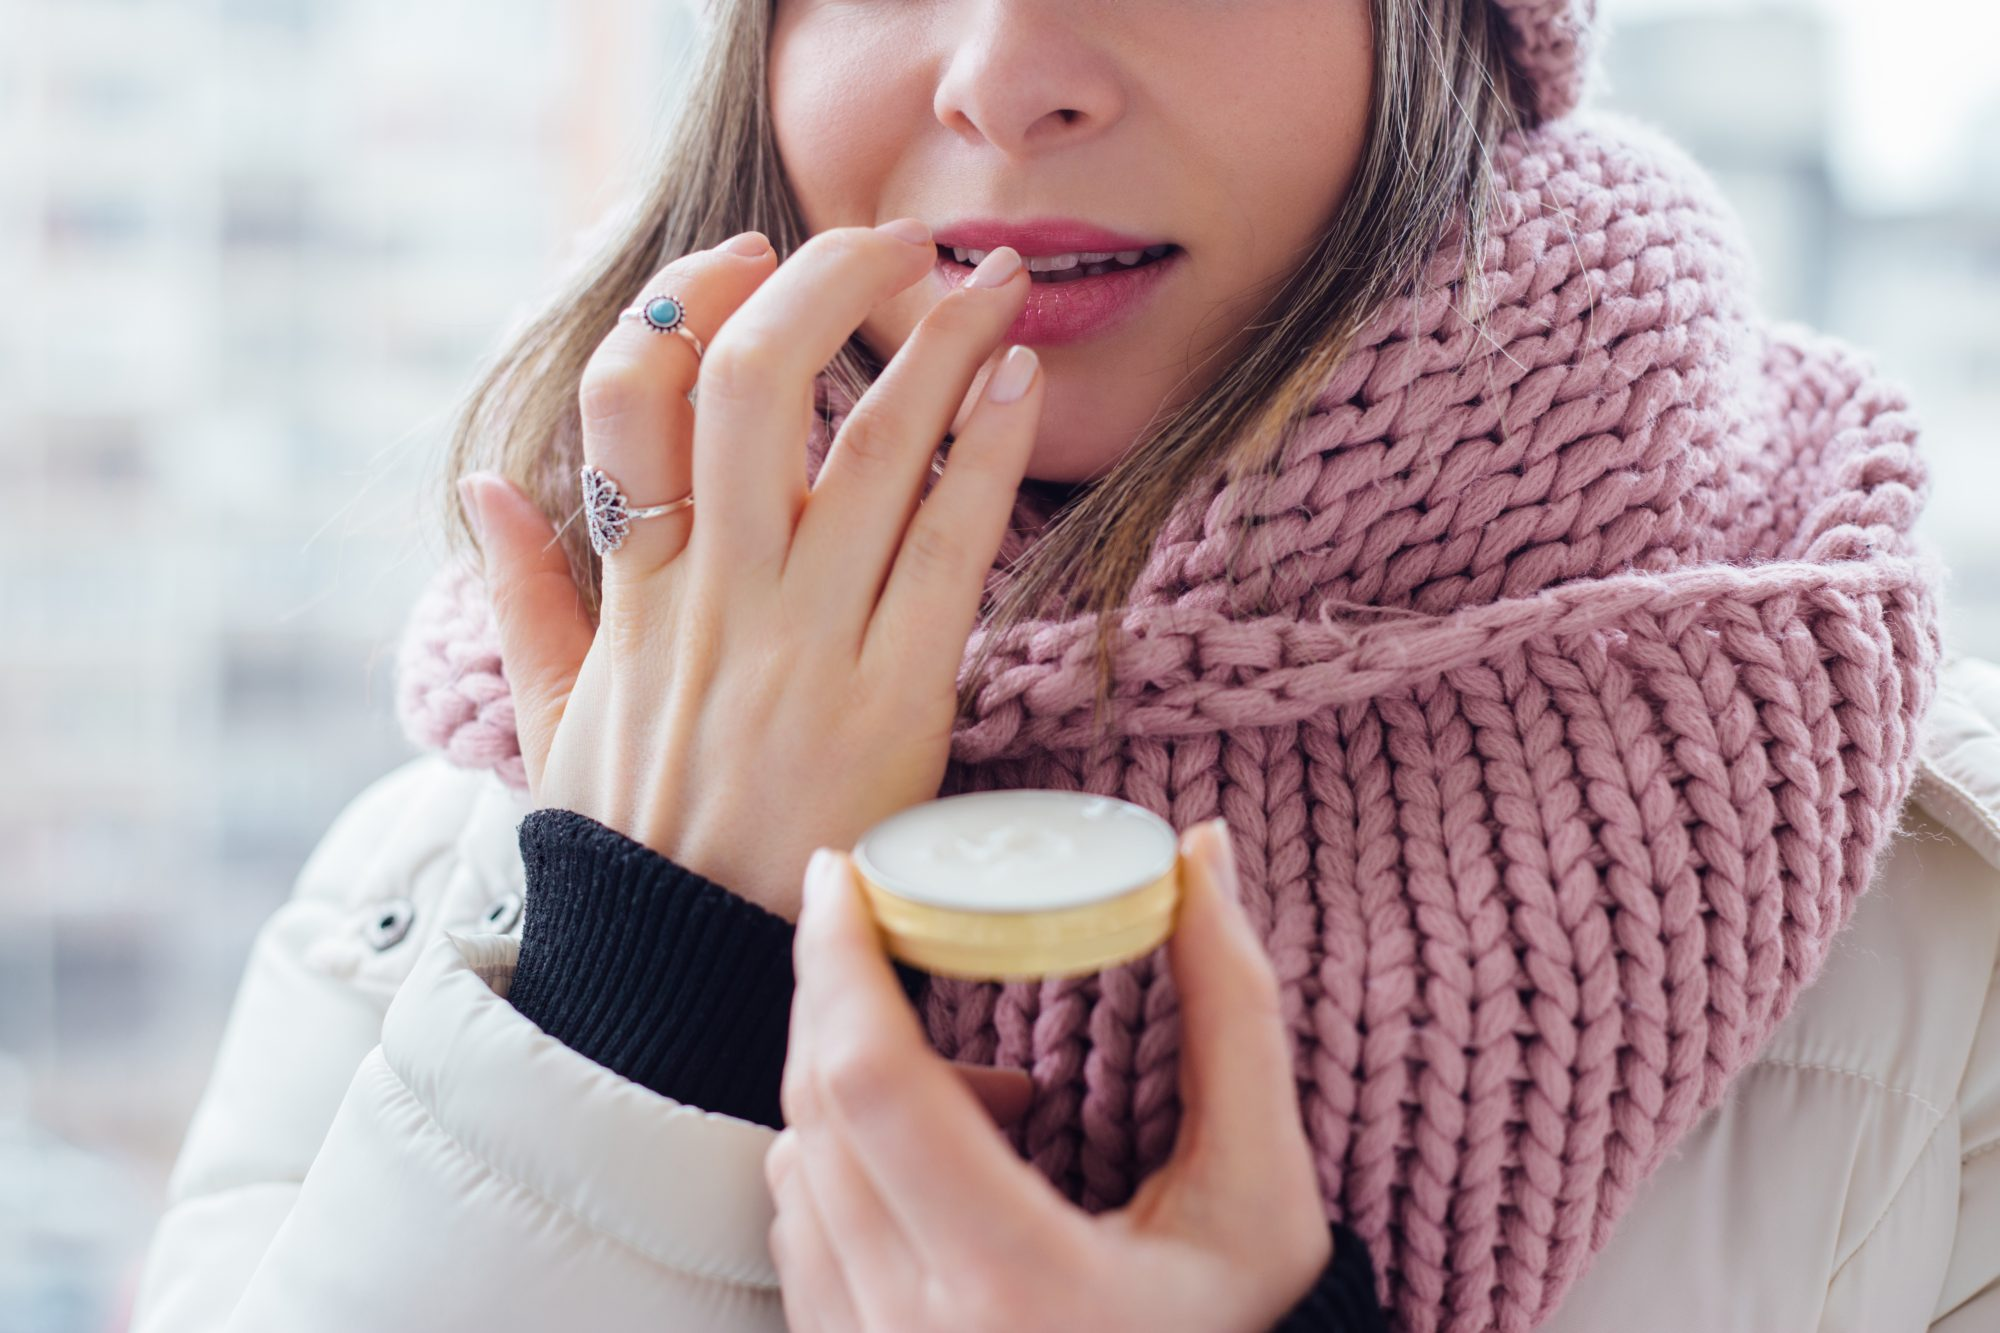 lip-balm-dry-lips: woman applying lip balm